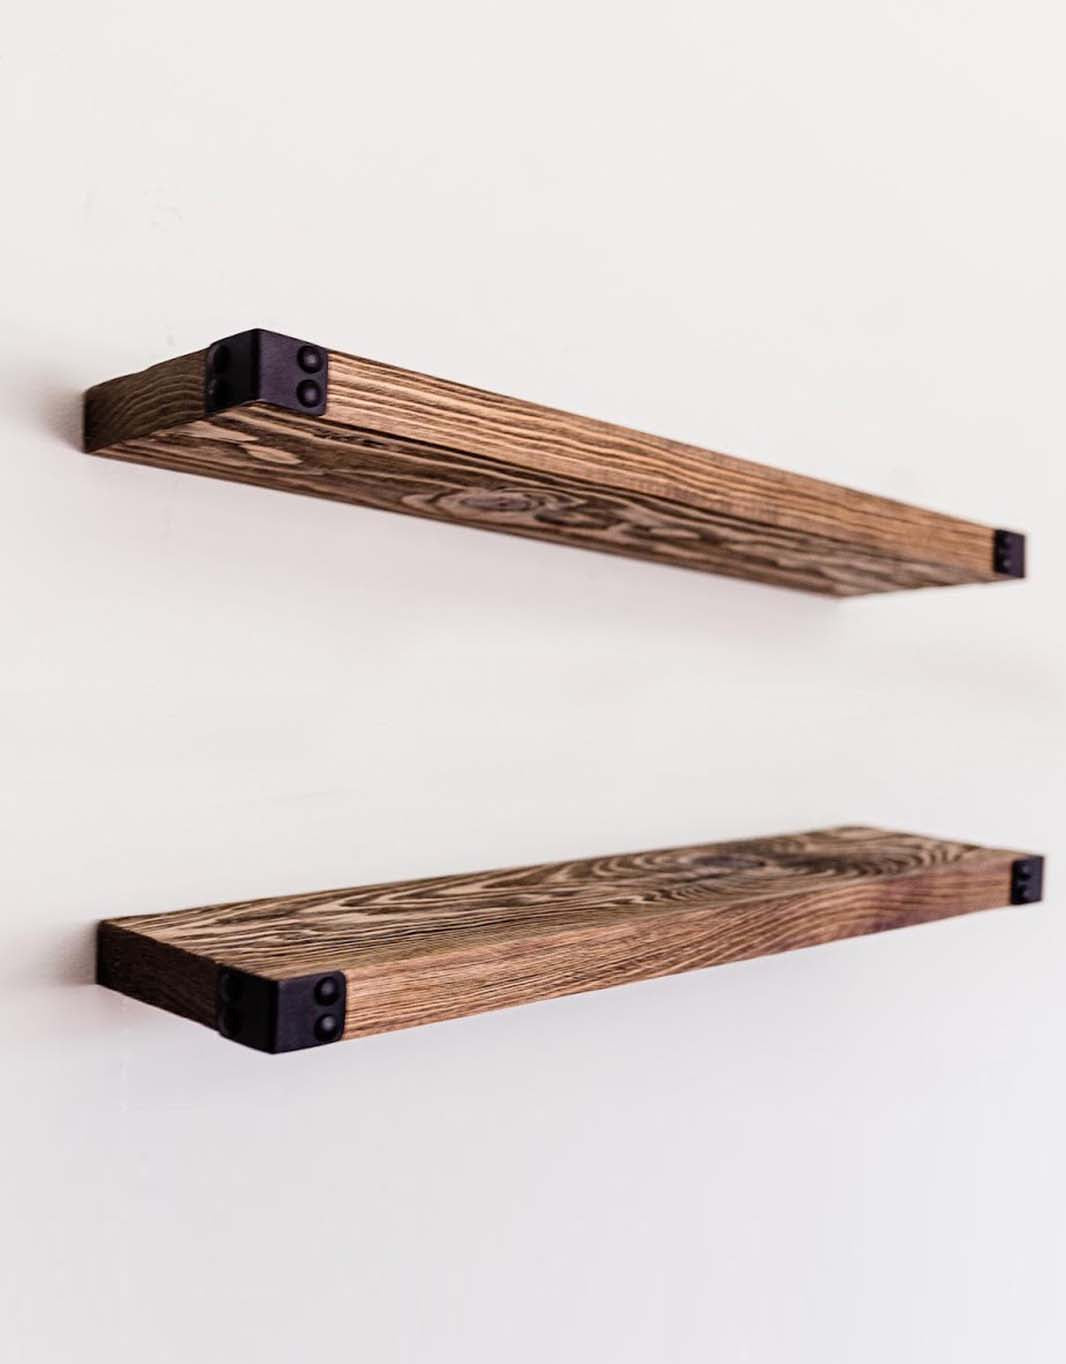 The Dennis - Floating Shelves for Wall Mounted, Modern Rustic All Wood Wall Shelves, Set of 2 for Bedroom, Bathroom, Family Room, Kitchen with Decorative Iron Corners 24 x 6 x 1.5 in